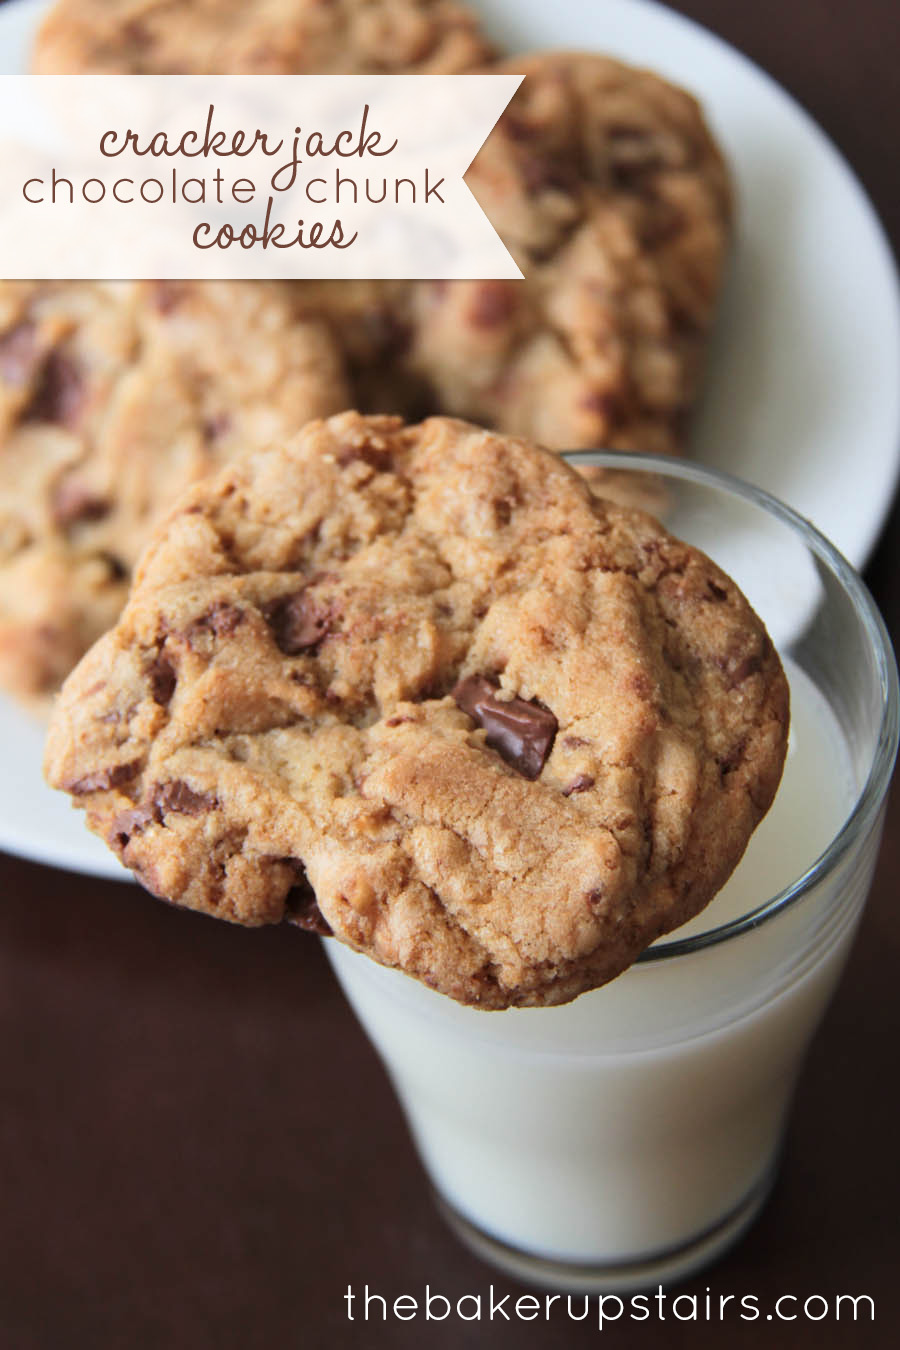 the baker upstairs: cracker jack chocolate chunk cookies